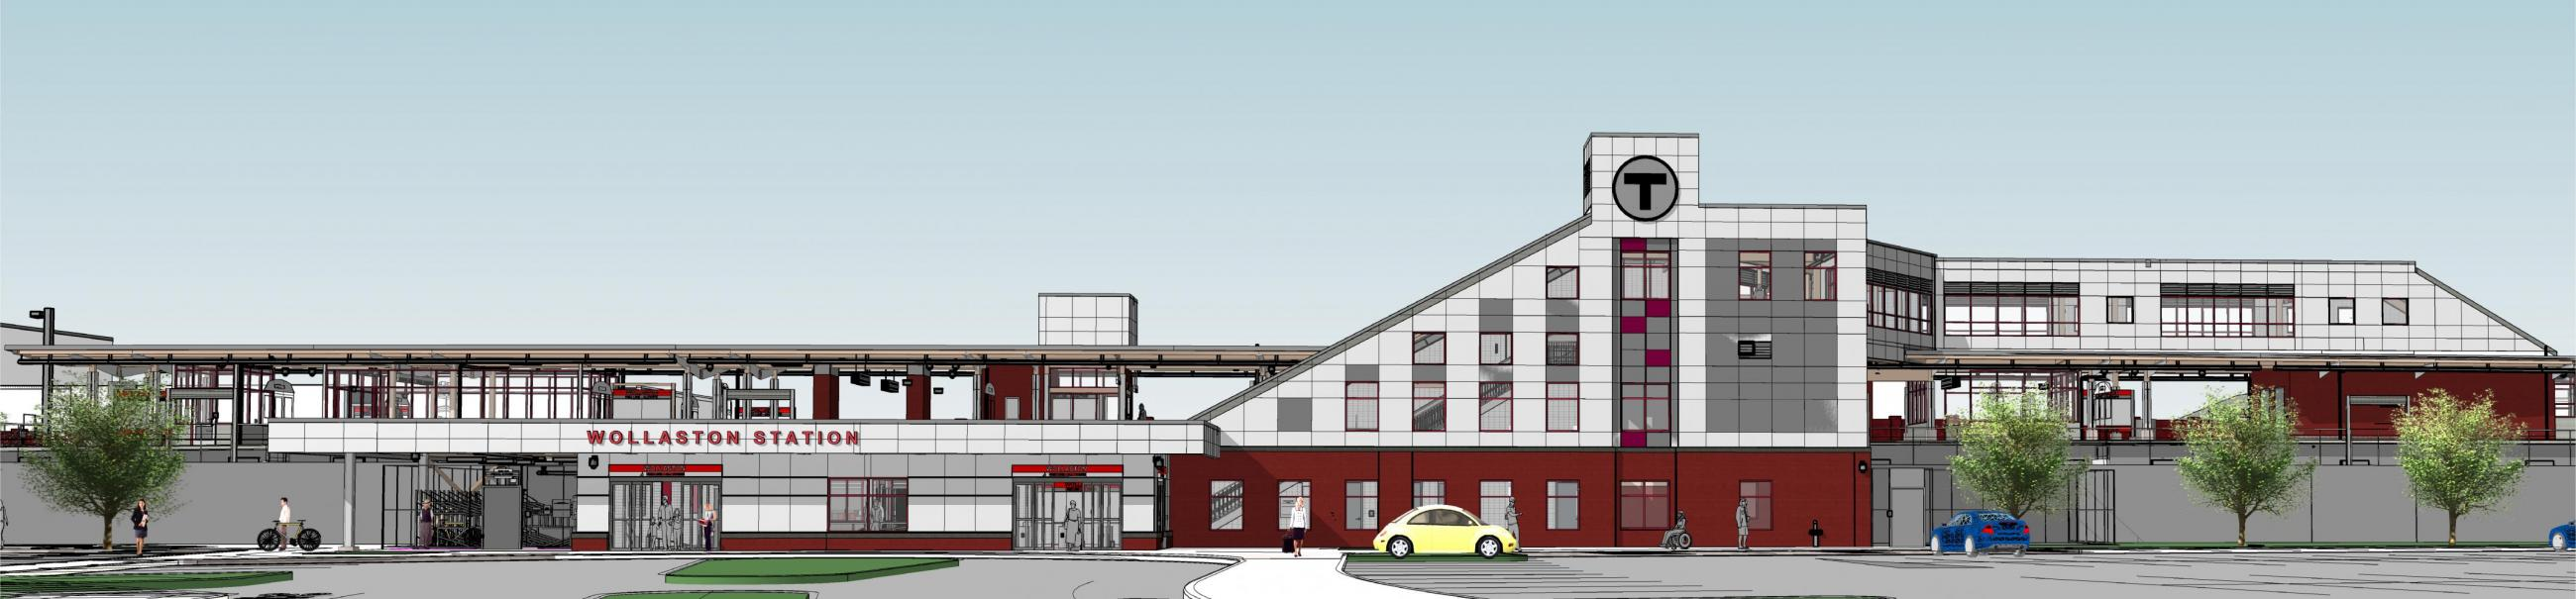 Rendering of planned improvements to Wollaston Station, as viewed from the parking lot